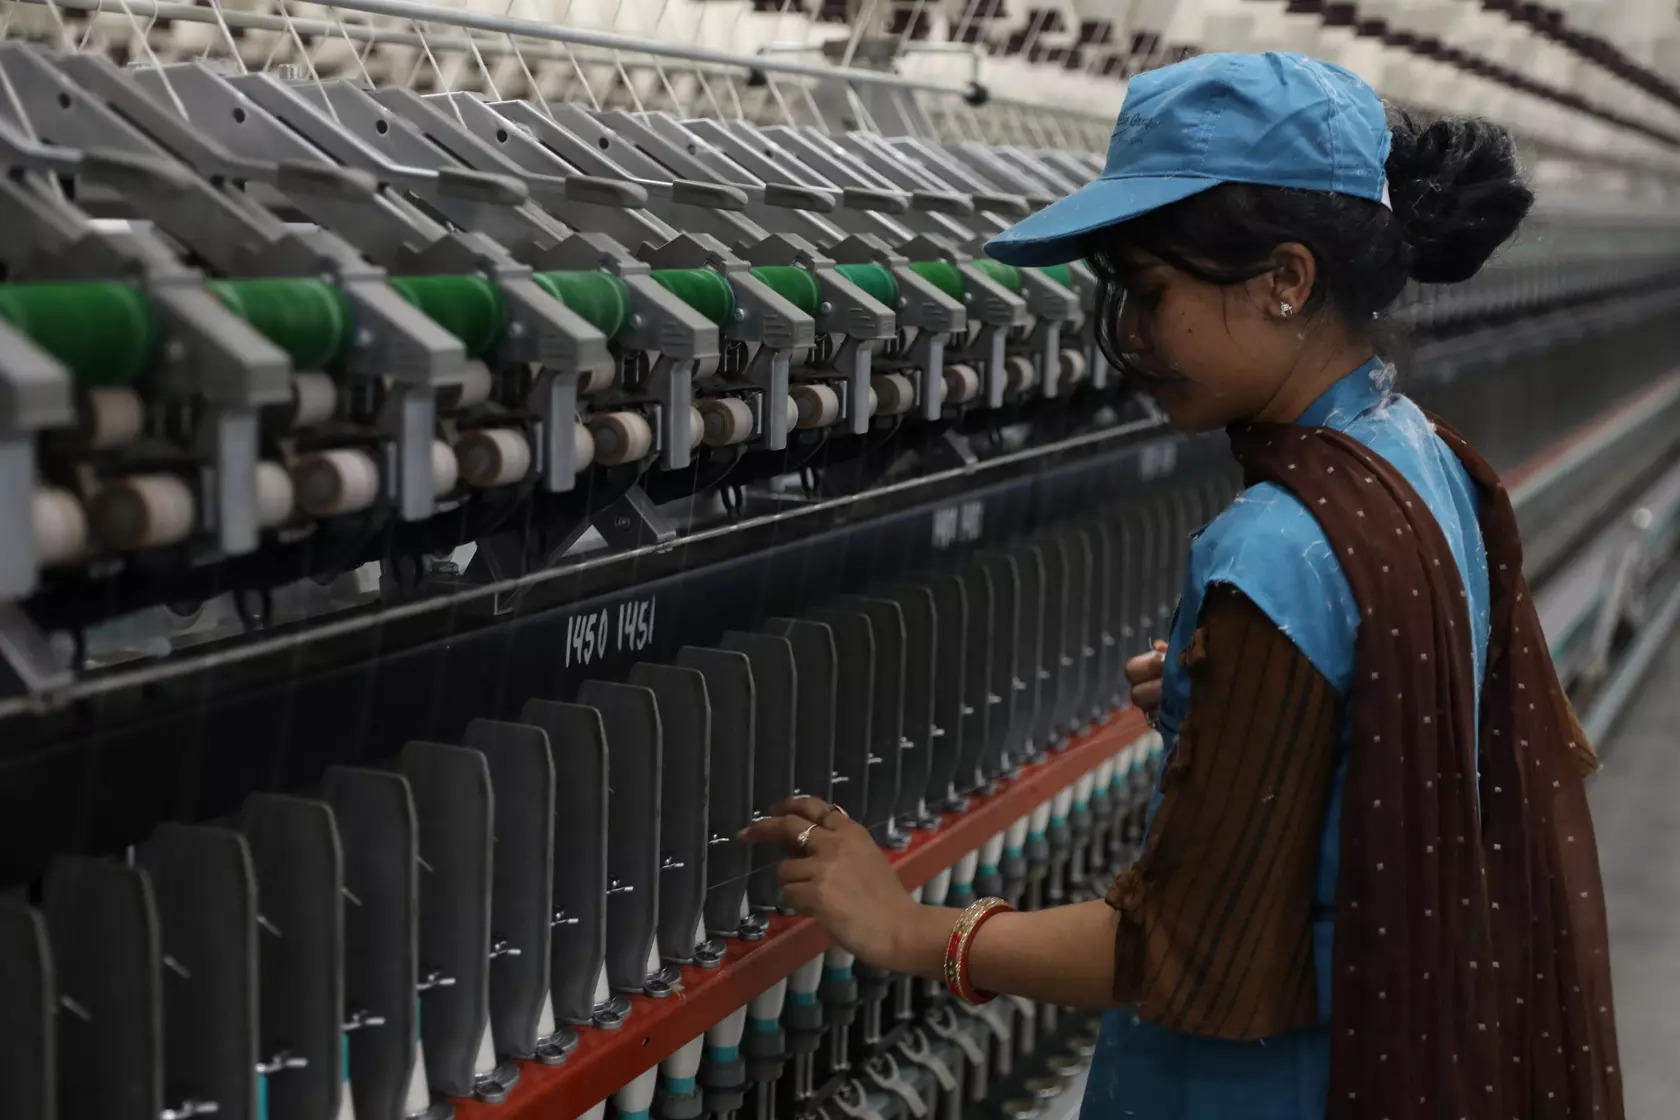 SVP Global Ventures to foray into technical textiles with an investment of Rs 100 crore